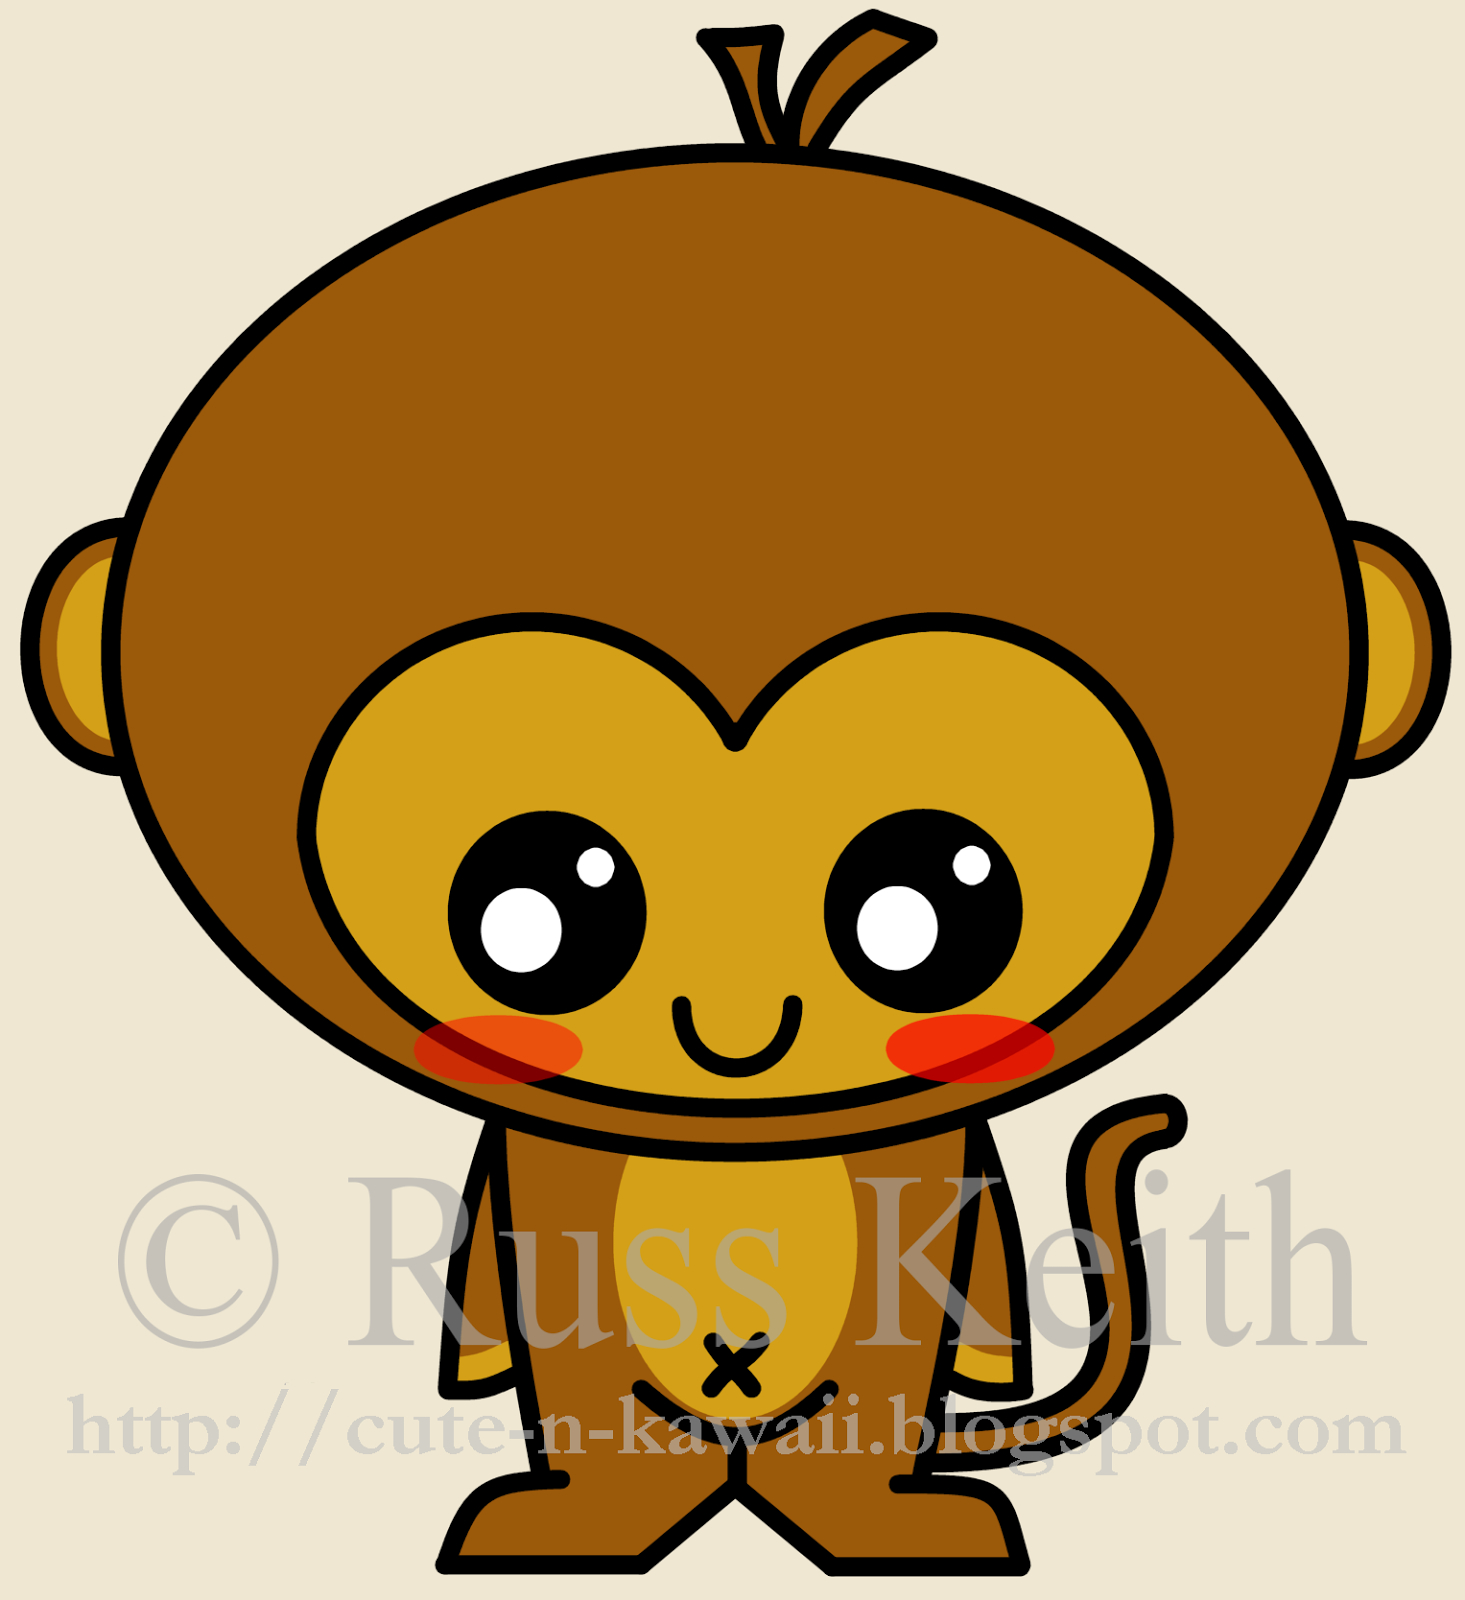 cute monkey drawing free download best cute monkey Three Monkeys Clip Art cute hanging monkey clipart